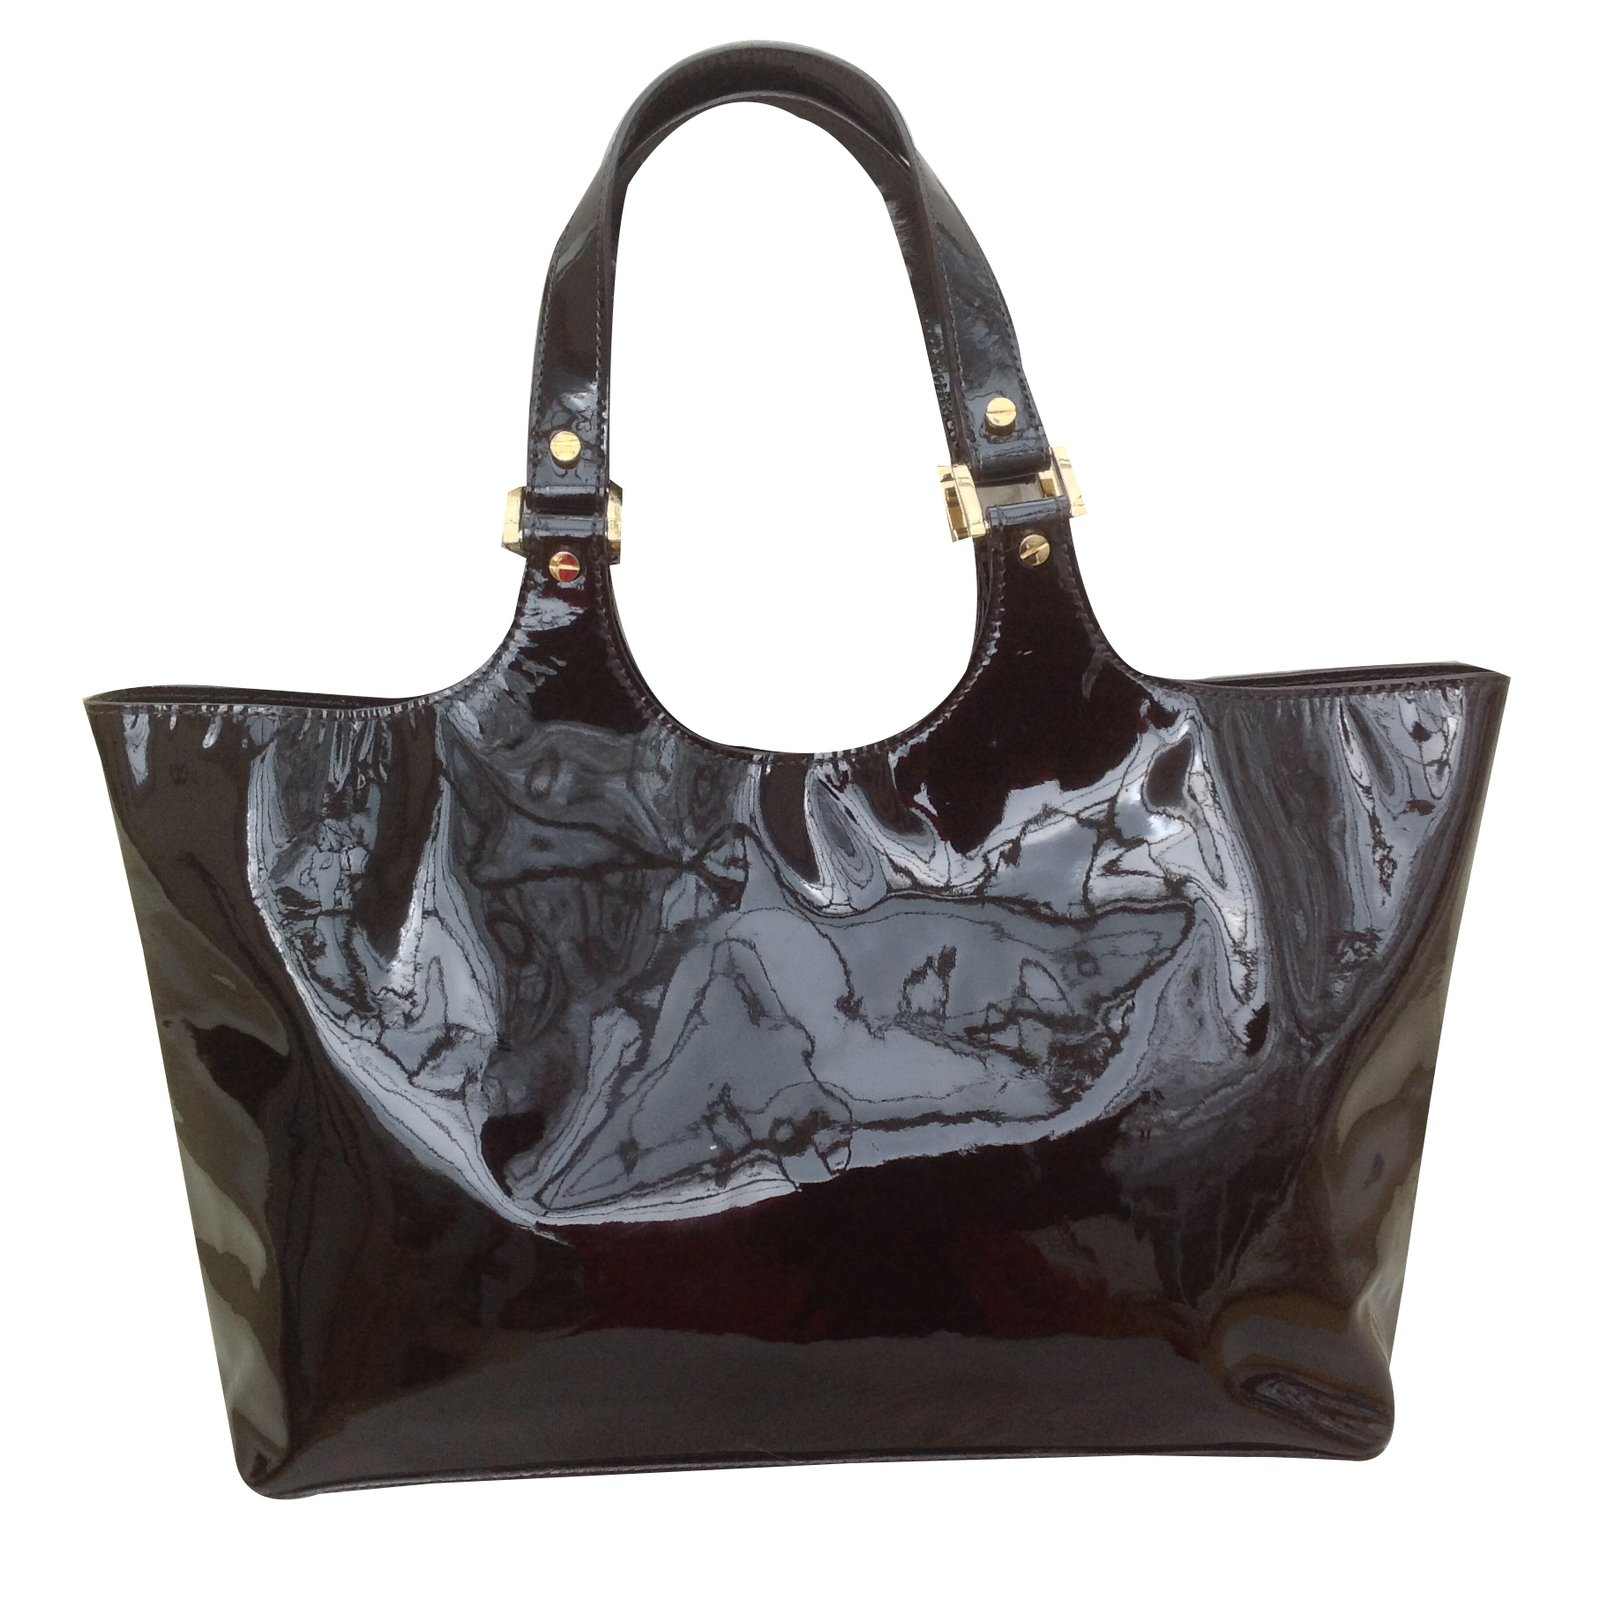 5d15b8d0c74 Tory Burch Tory burch patent leather bombe tote Handbags Patent leather  Brown ref.20822